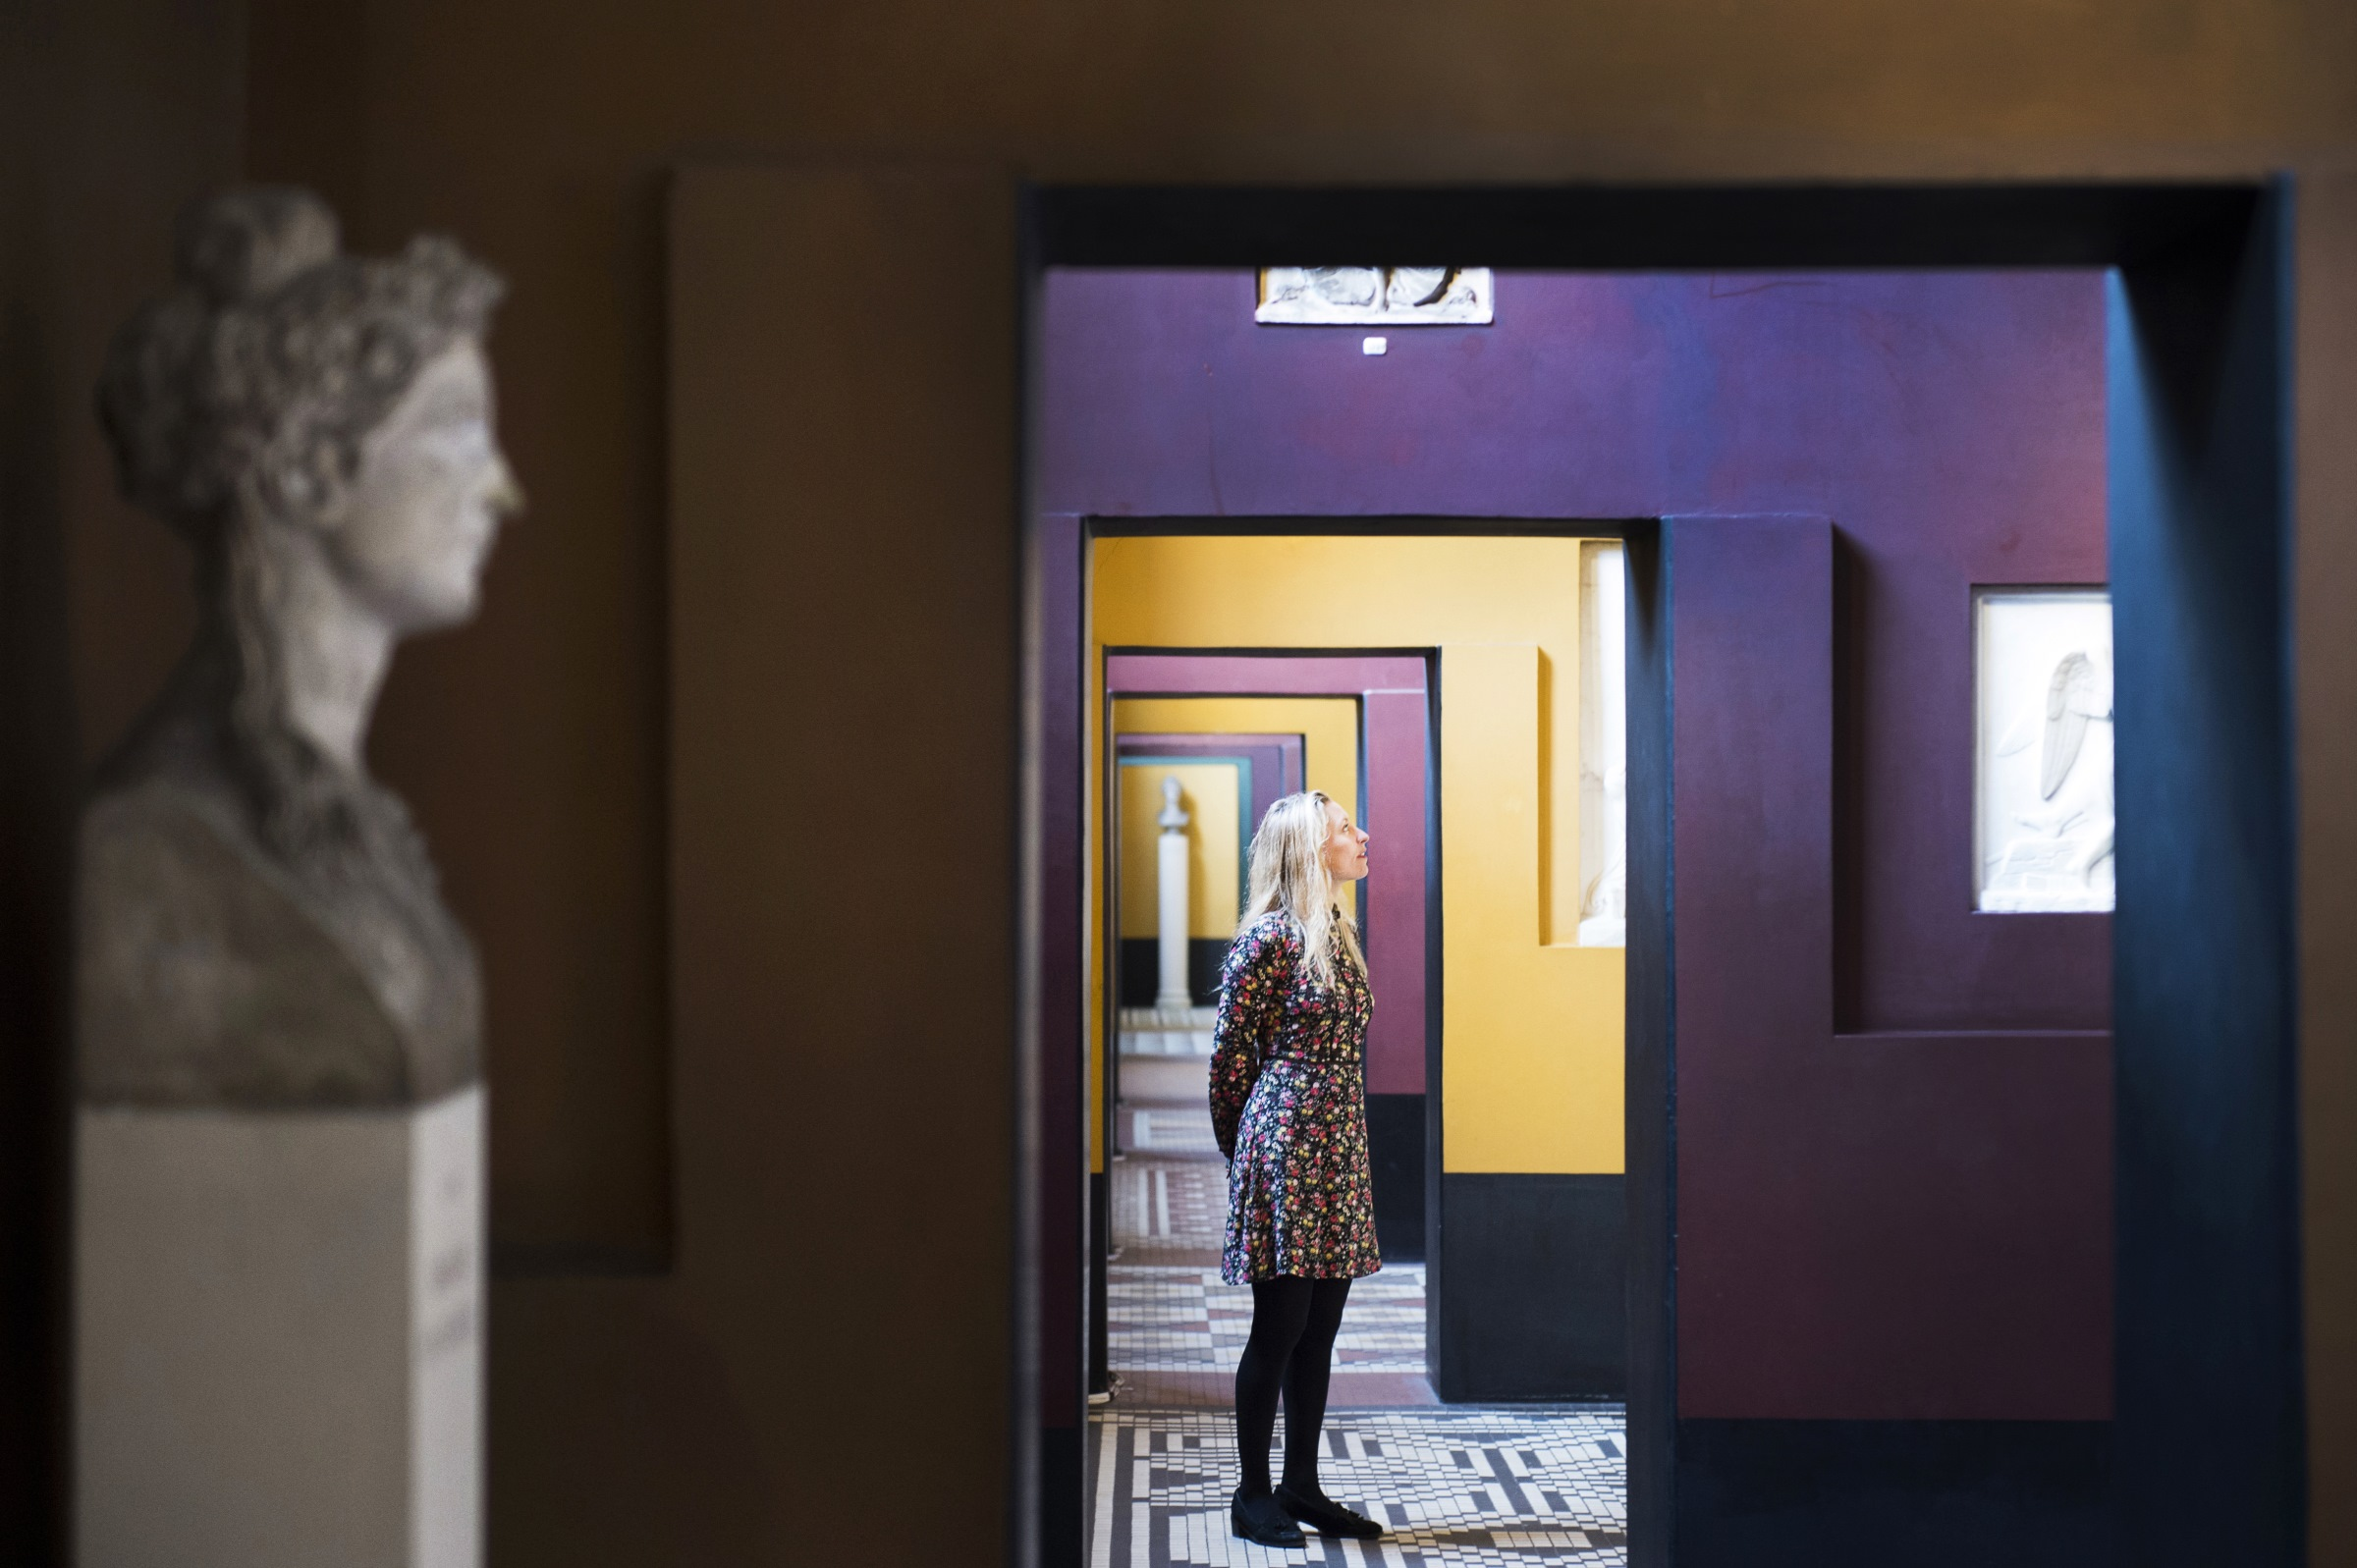 Woman framed by purple and yellow walls in Thorvaldsens Museum, Copenhagen